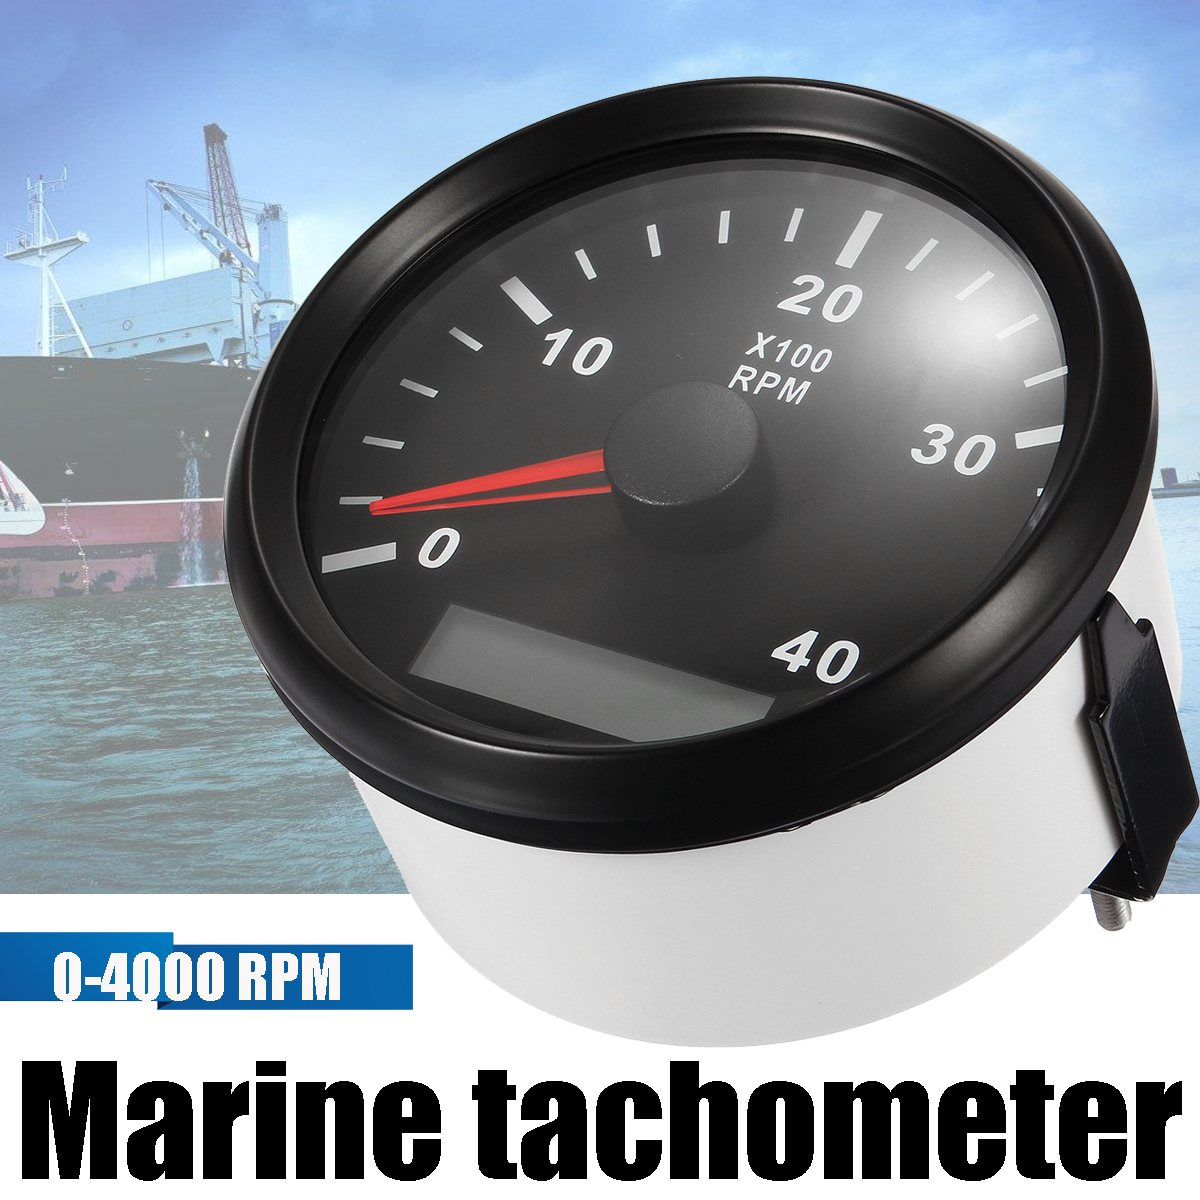 12/24V 0-4000 Boat RPM 85m Marine Boat Tachometer Gauge LCD Meter Tacho Hourmeter Boat RPM White Black With Cable kus marine car truck tachometer boat motor digital hourmeter 12 24v 0 4000 rpm